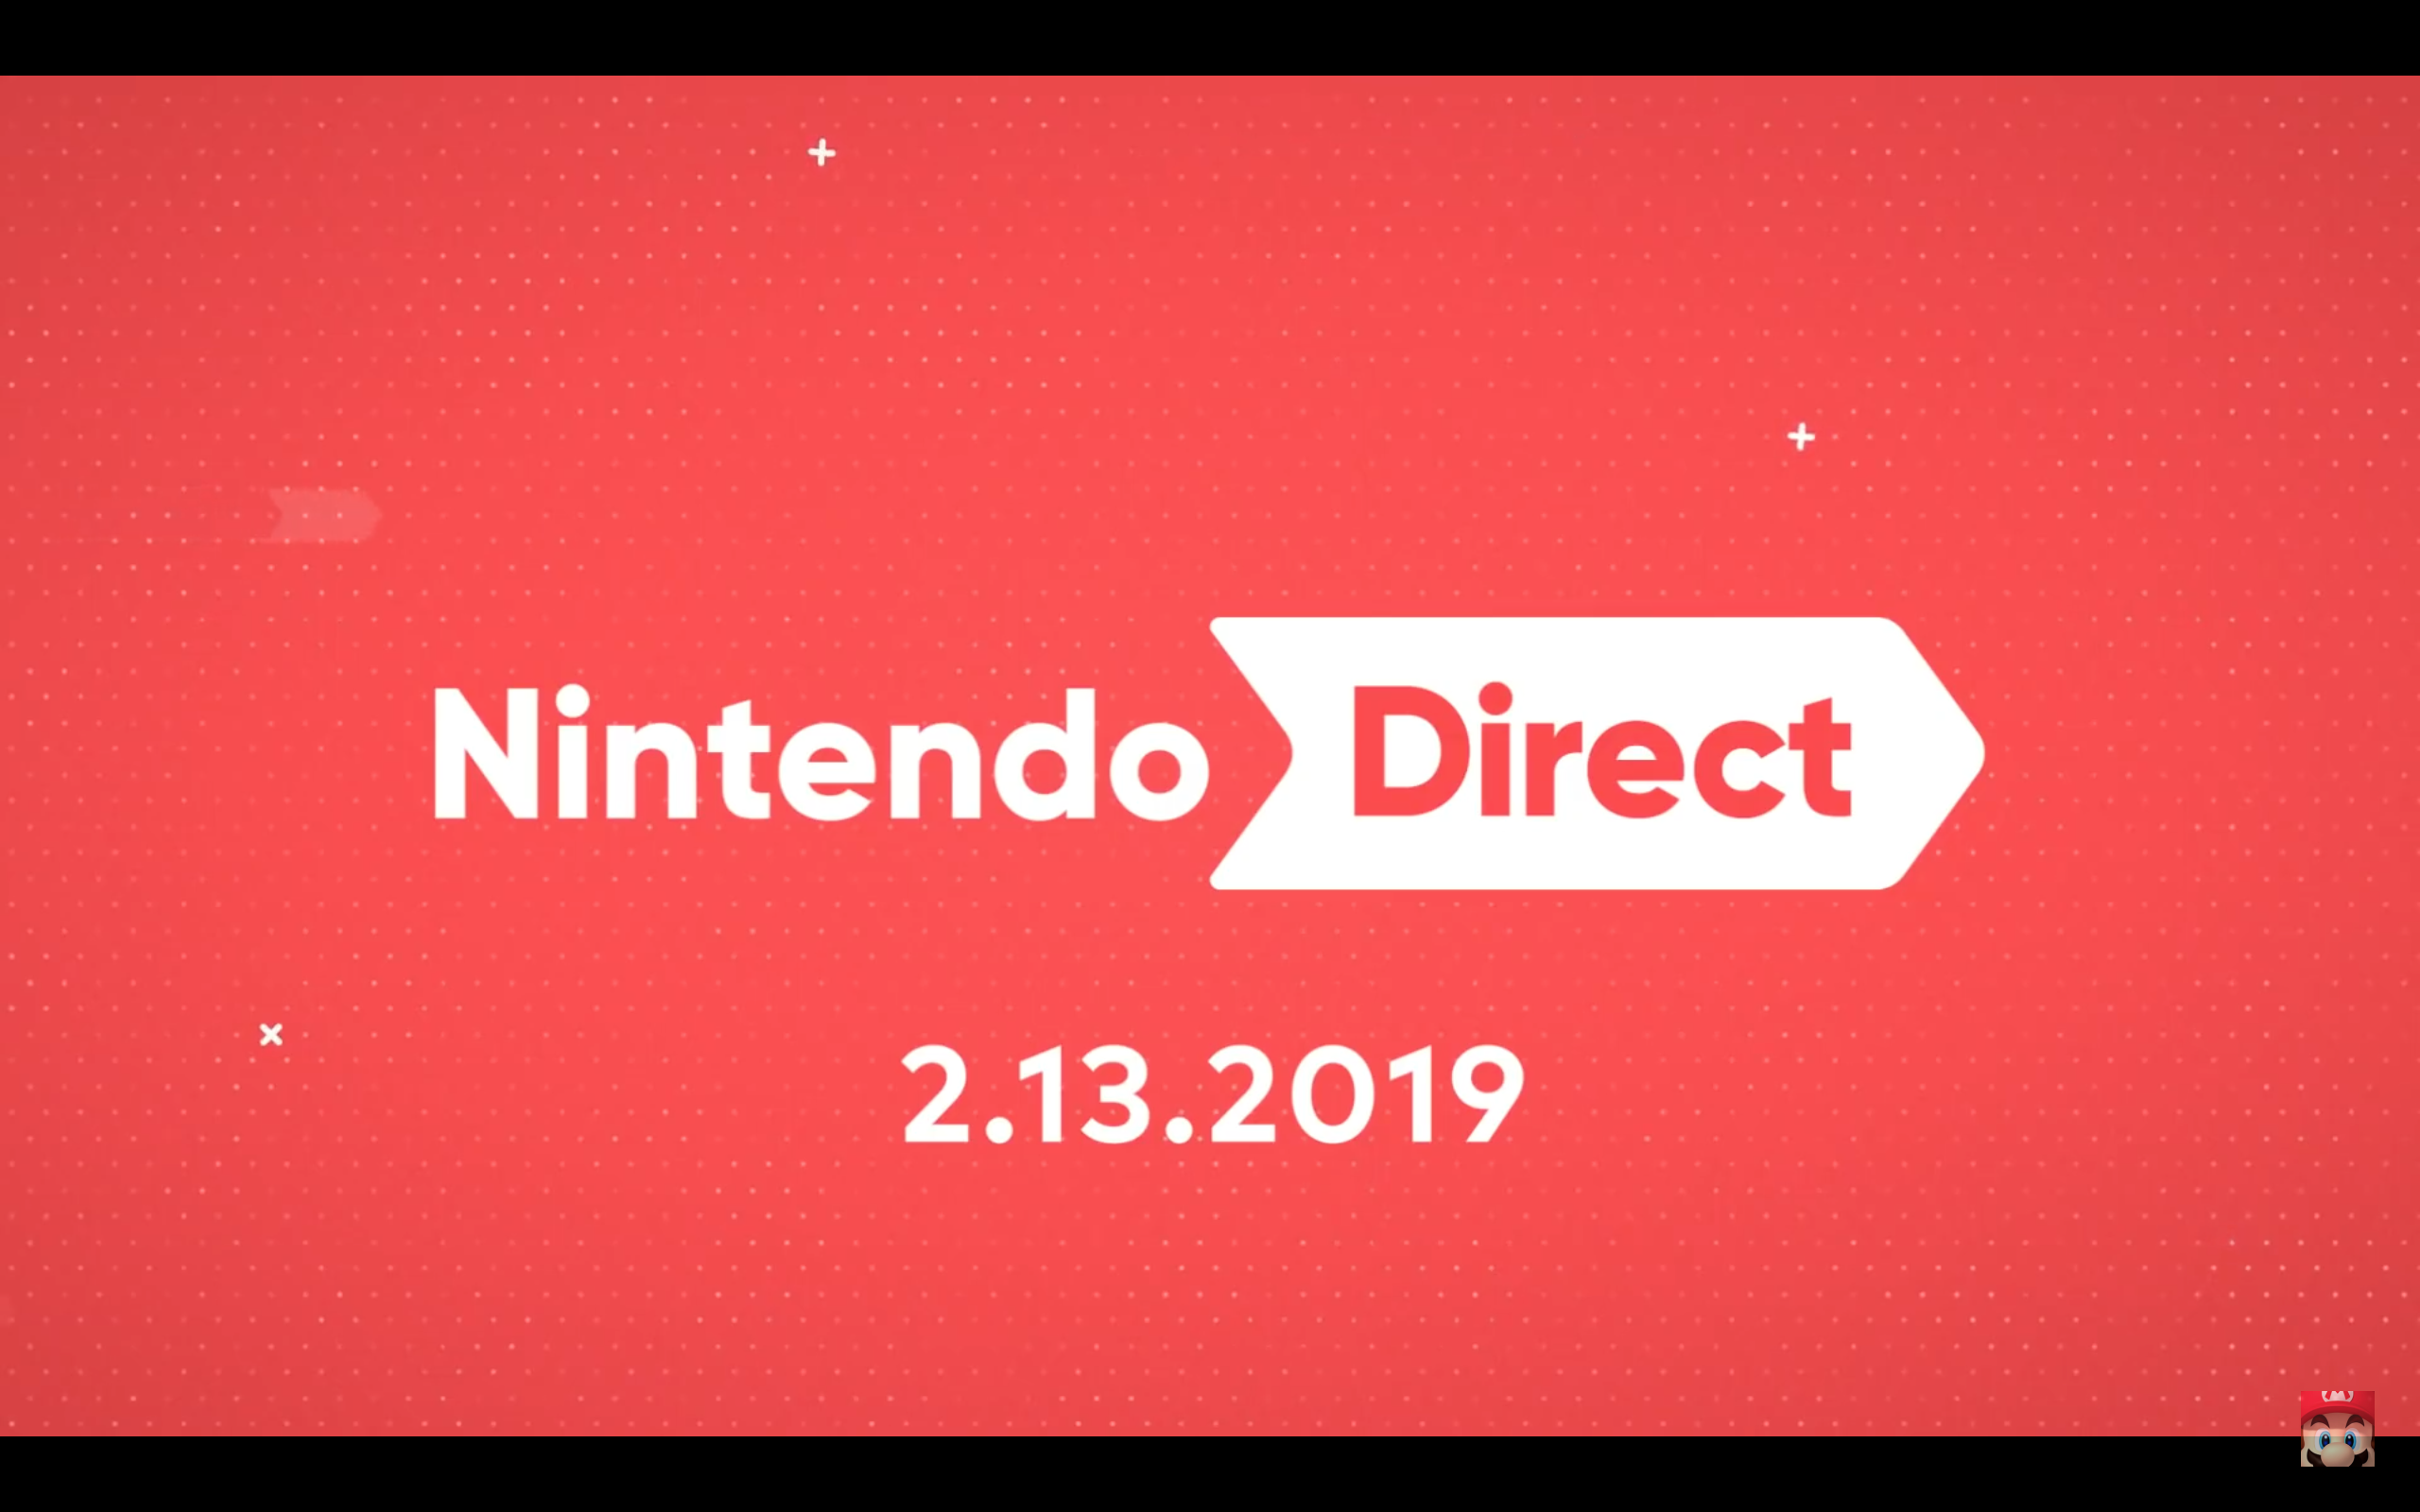 Every Major Announcement From February's Nintendo Direct